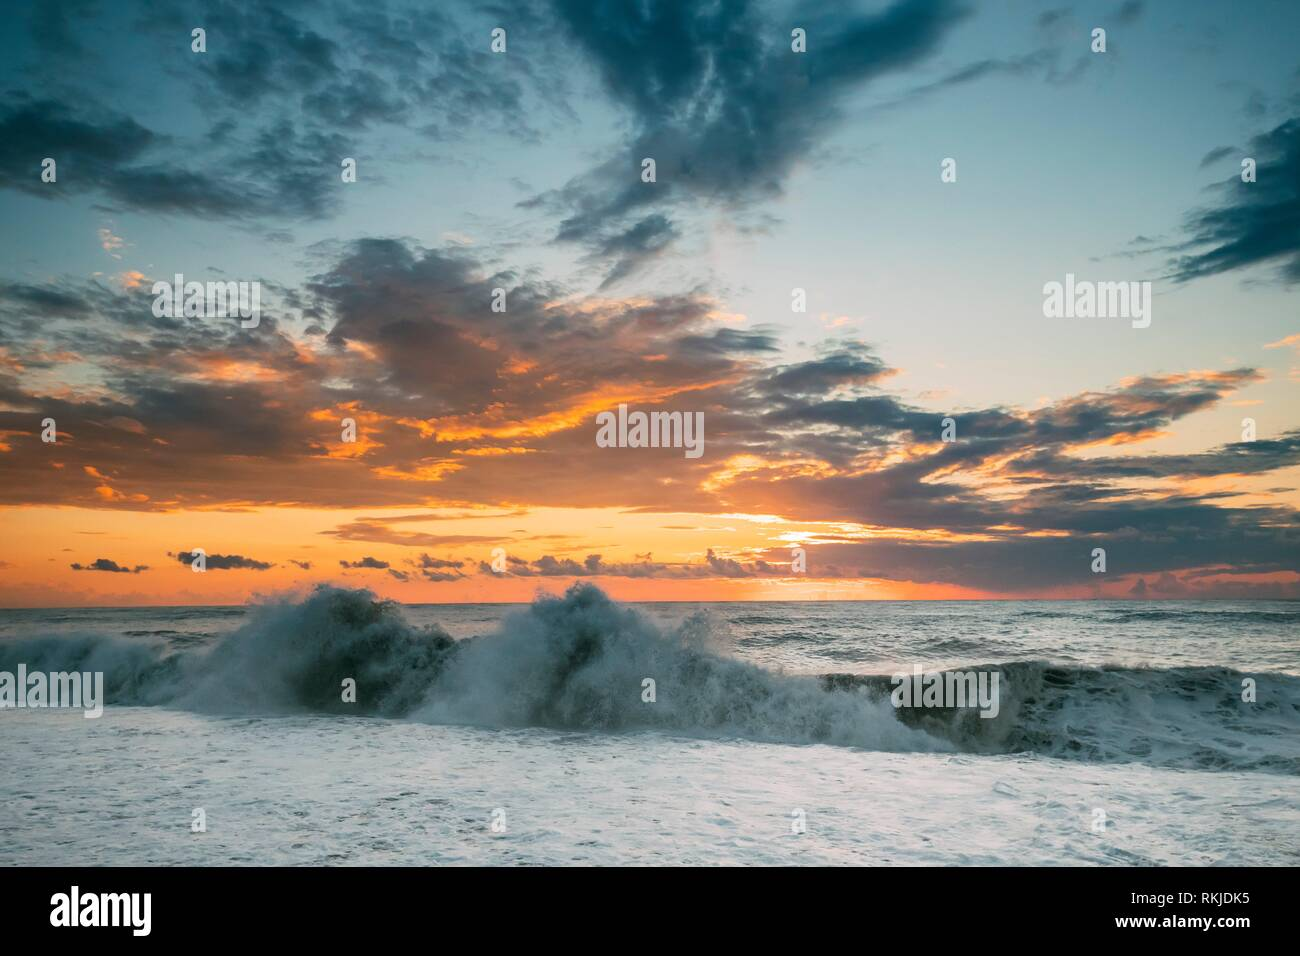 Sea Or Ocean Waves During Storm Colorful Sunset Or Sunrise Sky Background. Stock Photo